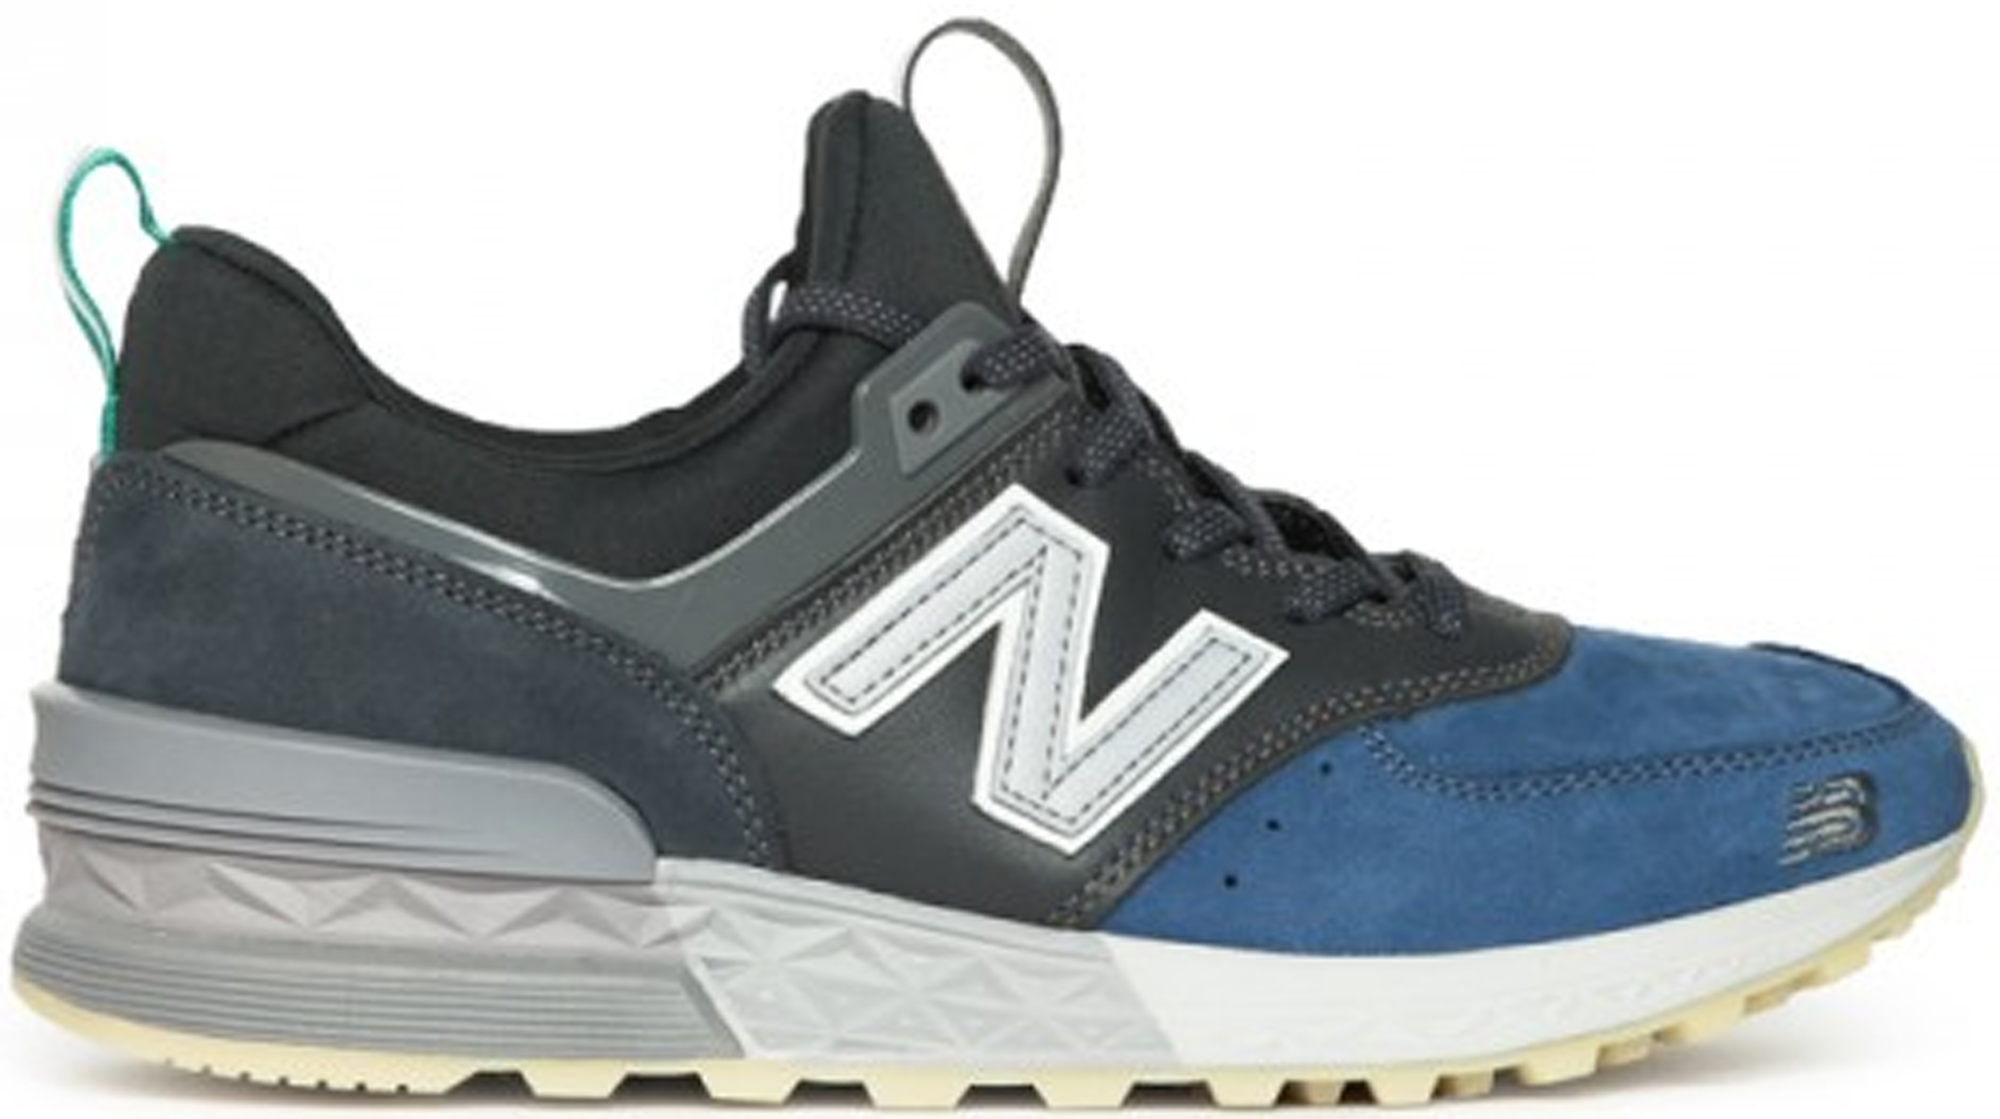 New Balance 574 Sport Mita Black Blue Grey